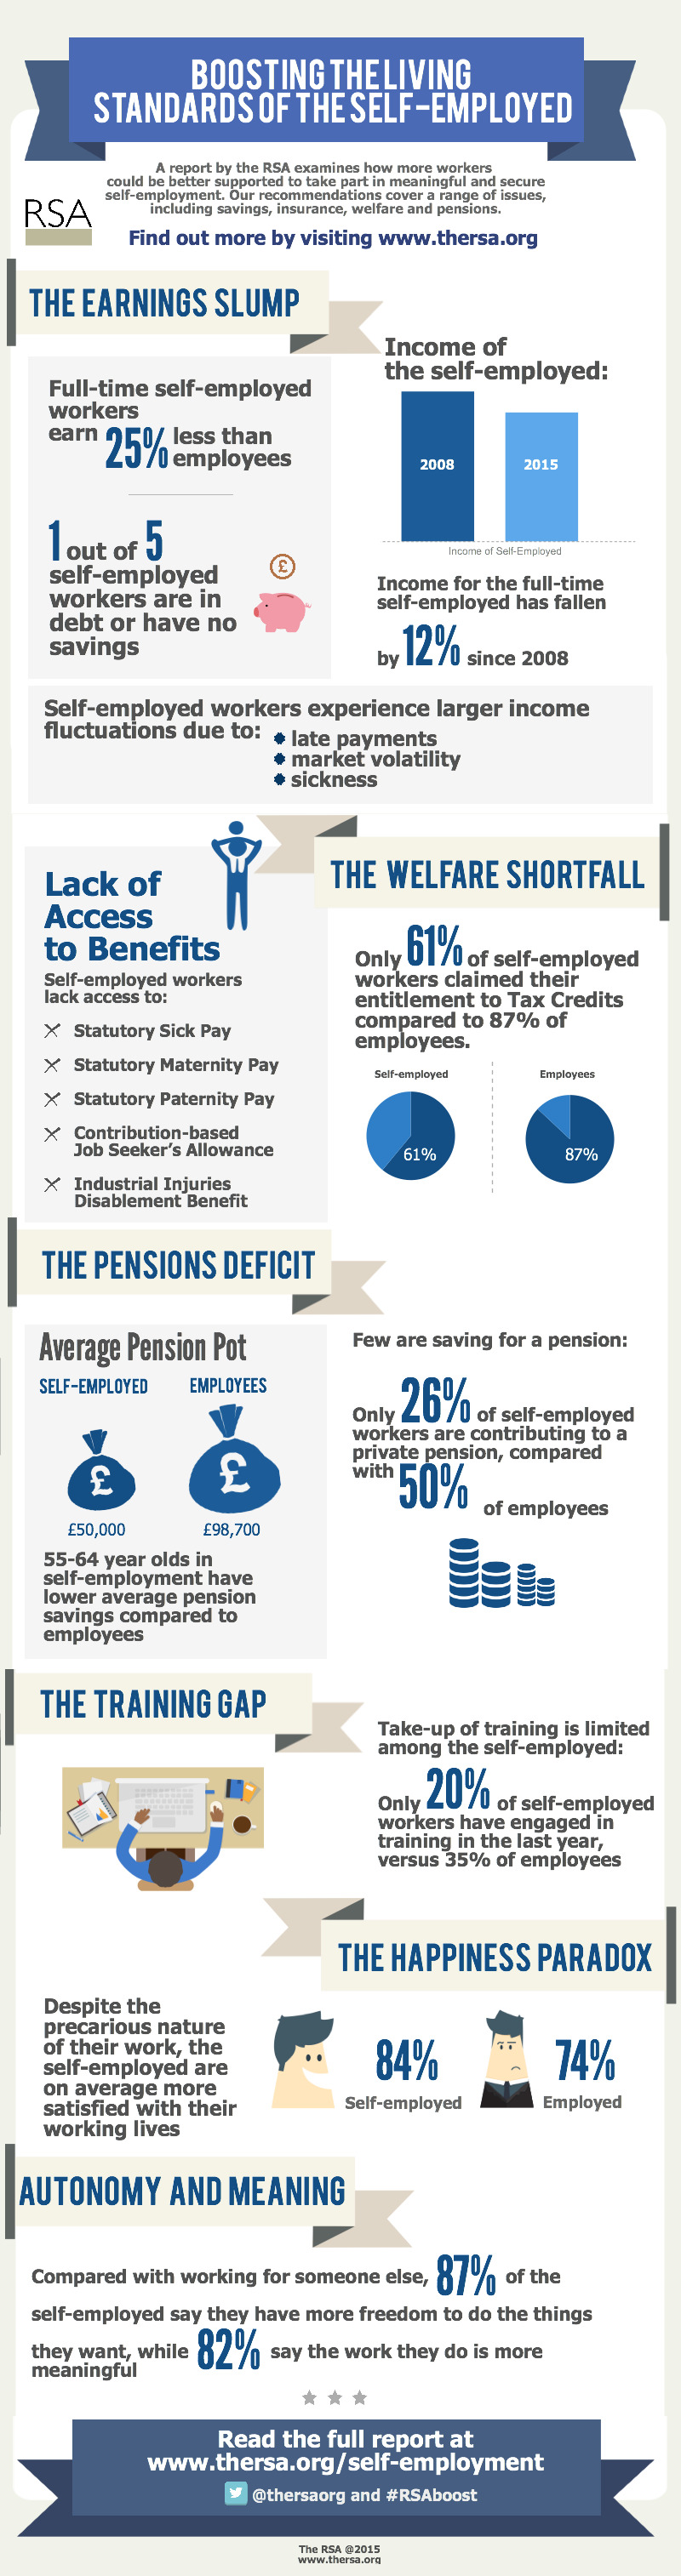 Infographic done by RSA